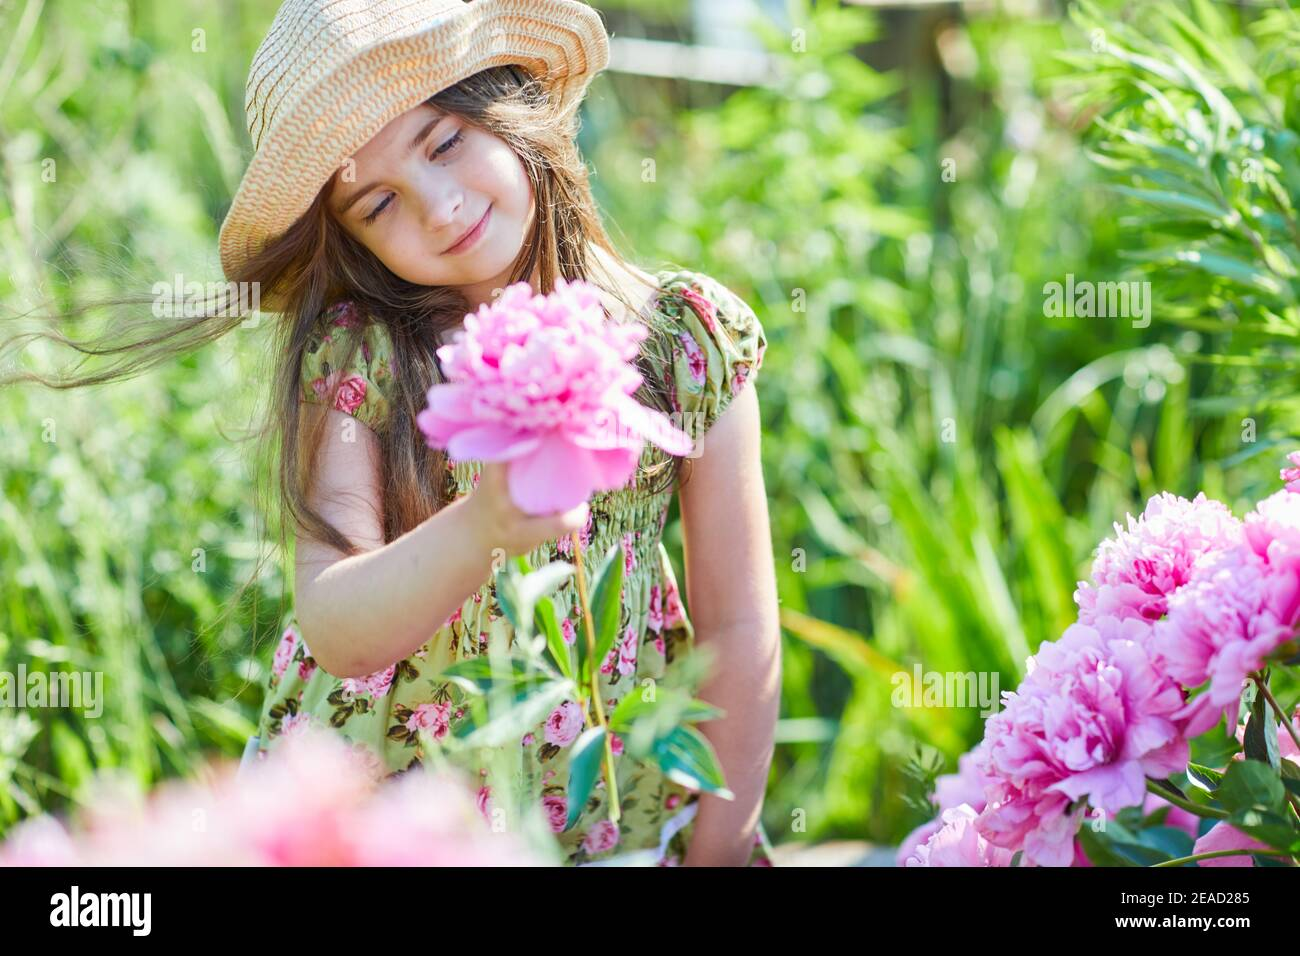 Beautiful little girl is holding a pink peony in a sunny day in the garden.  Pretty girl is wearing a fashionable patterned summer dress and straw hat Stock Photo